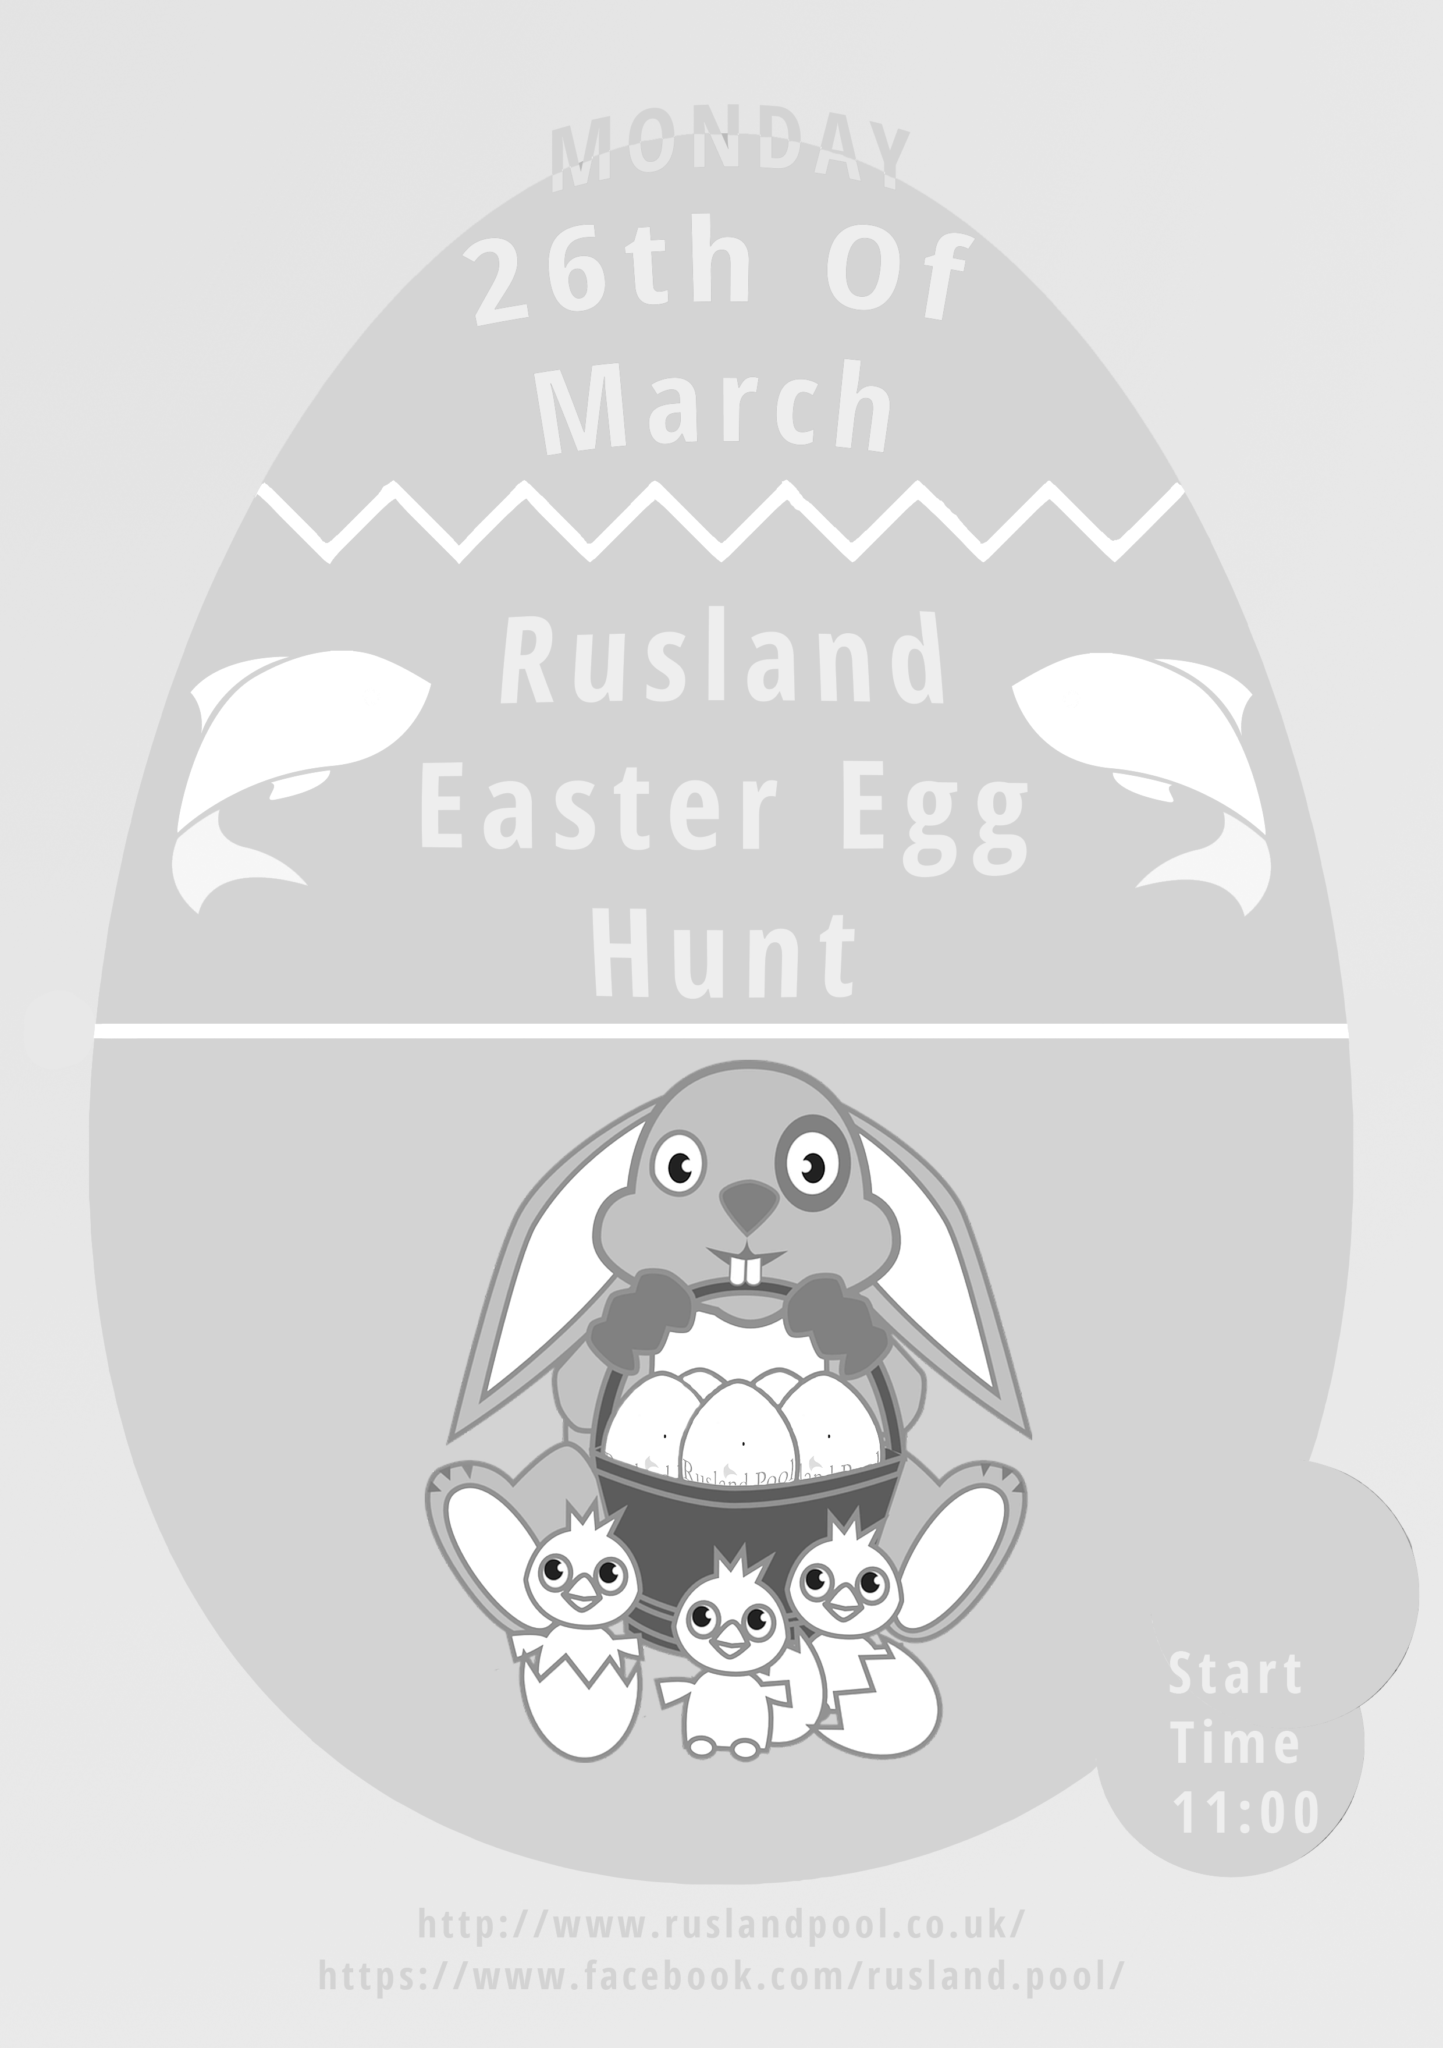 free colouring sheets and great crafty ideas at Ruslandpool\'s ...